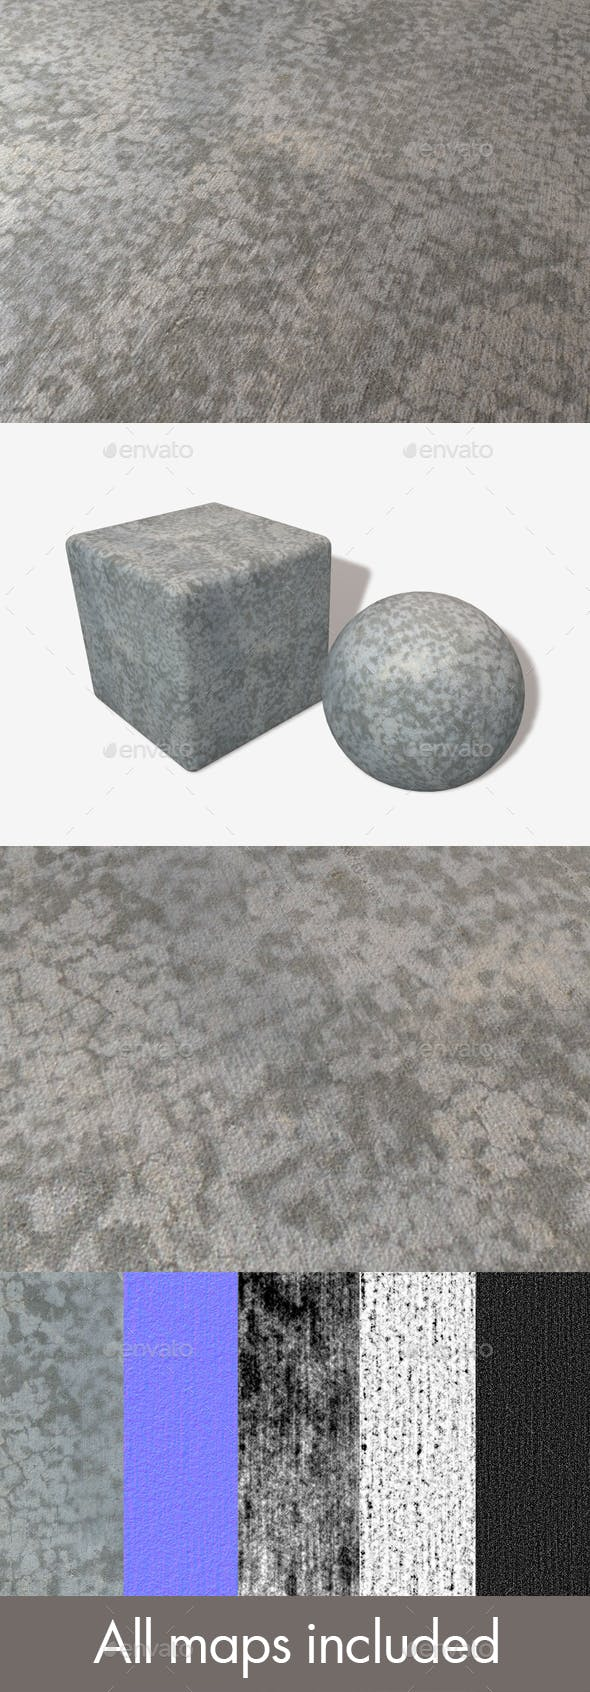 Drying Concrete Seamless Texture - 3DOcean Item for Sale